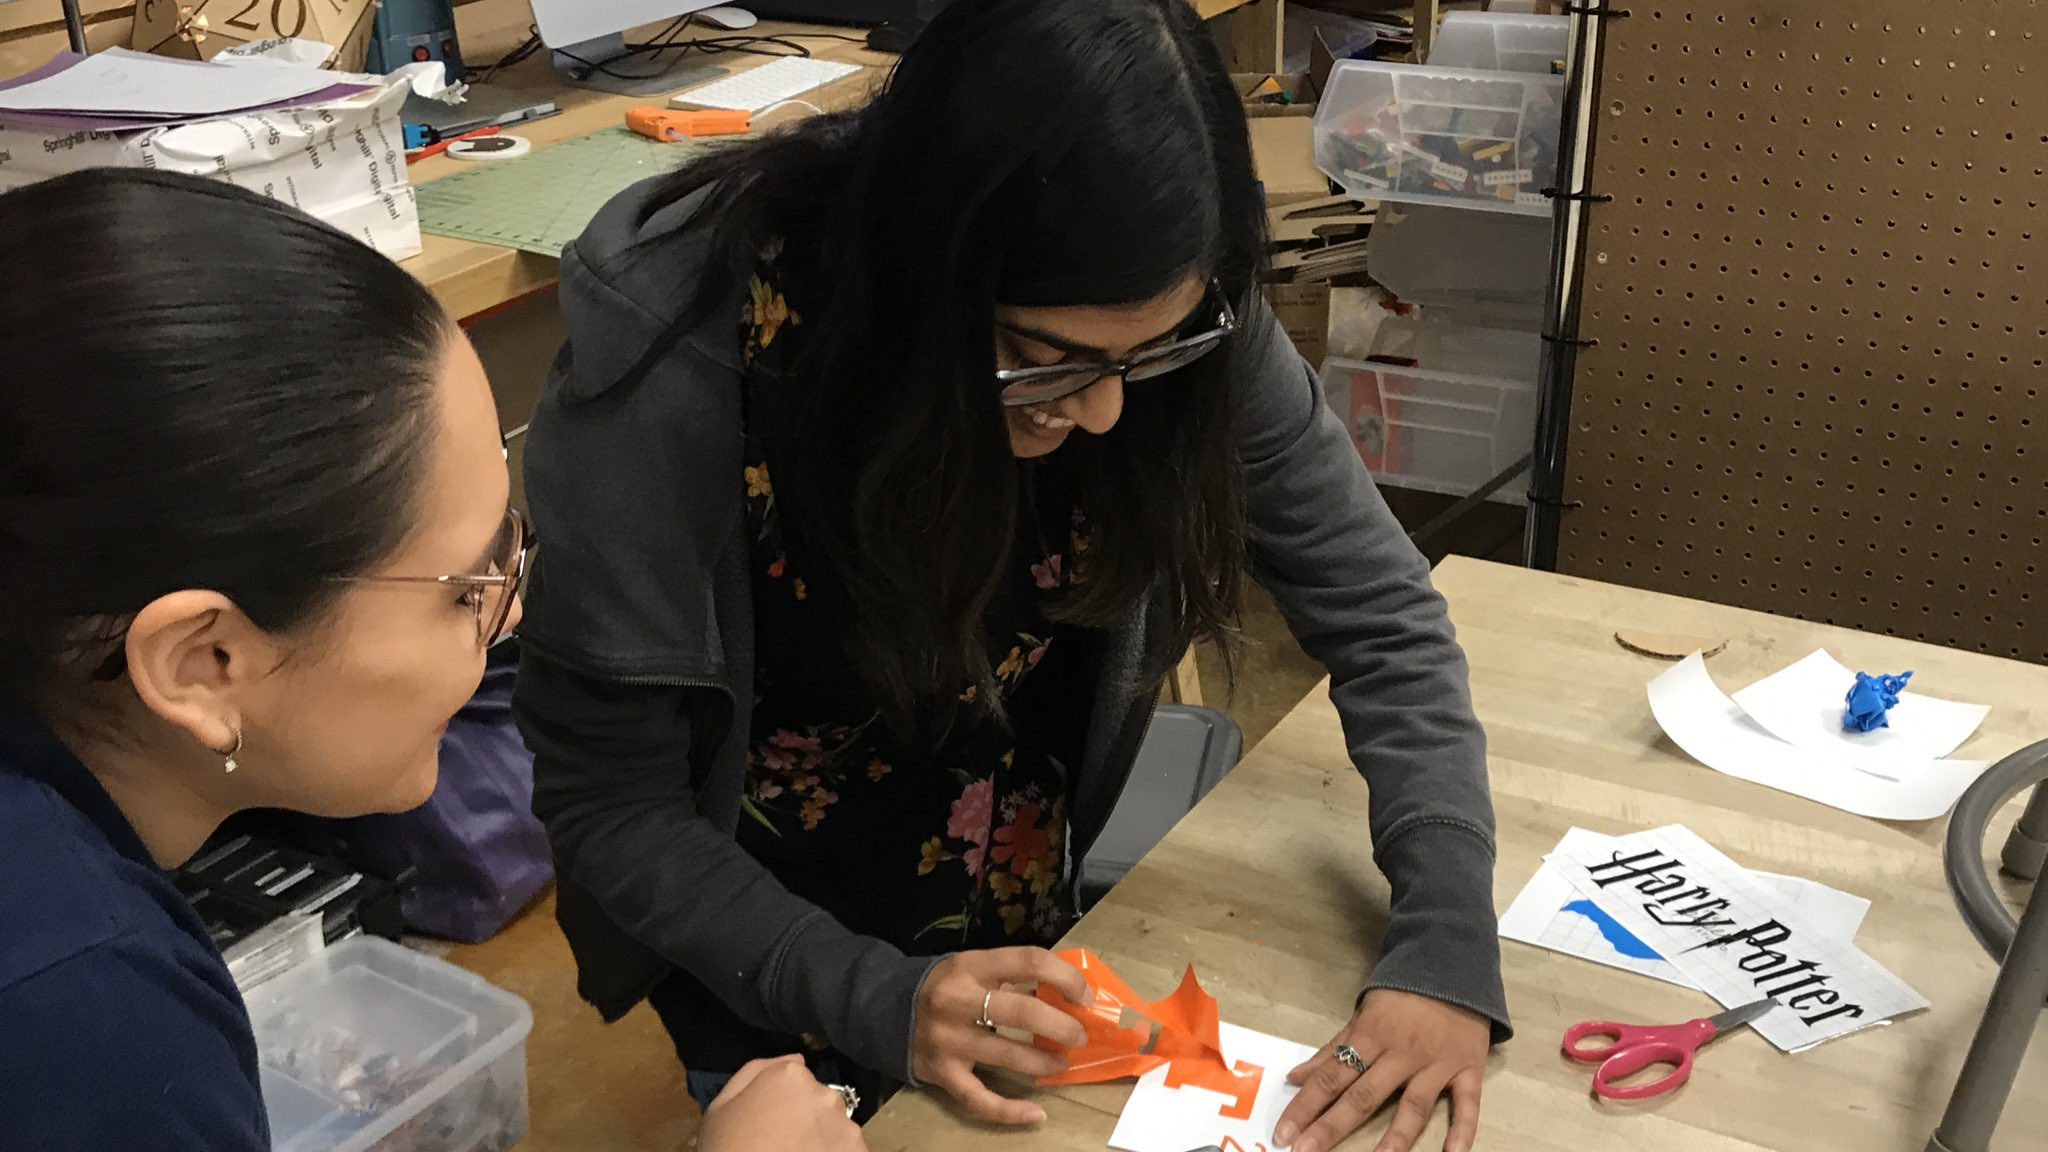 Our #UTeachMaker interns are now obsessed with vinyl cutting. Mission accomplished. #MakerEd https://t.co/pCjn92gFMS